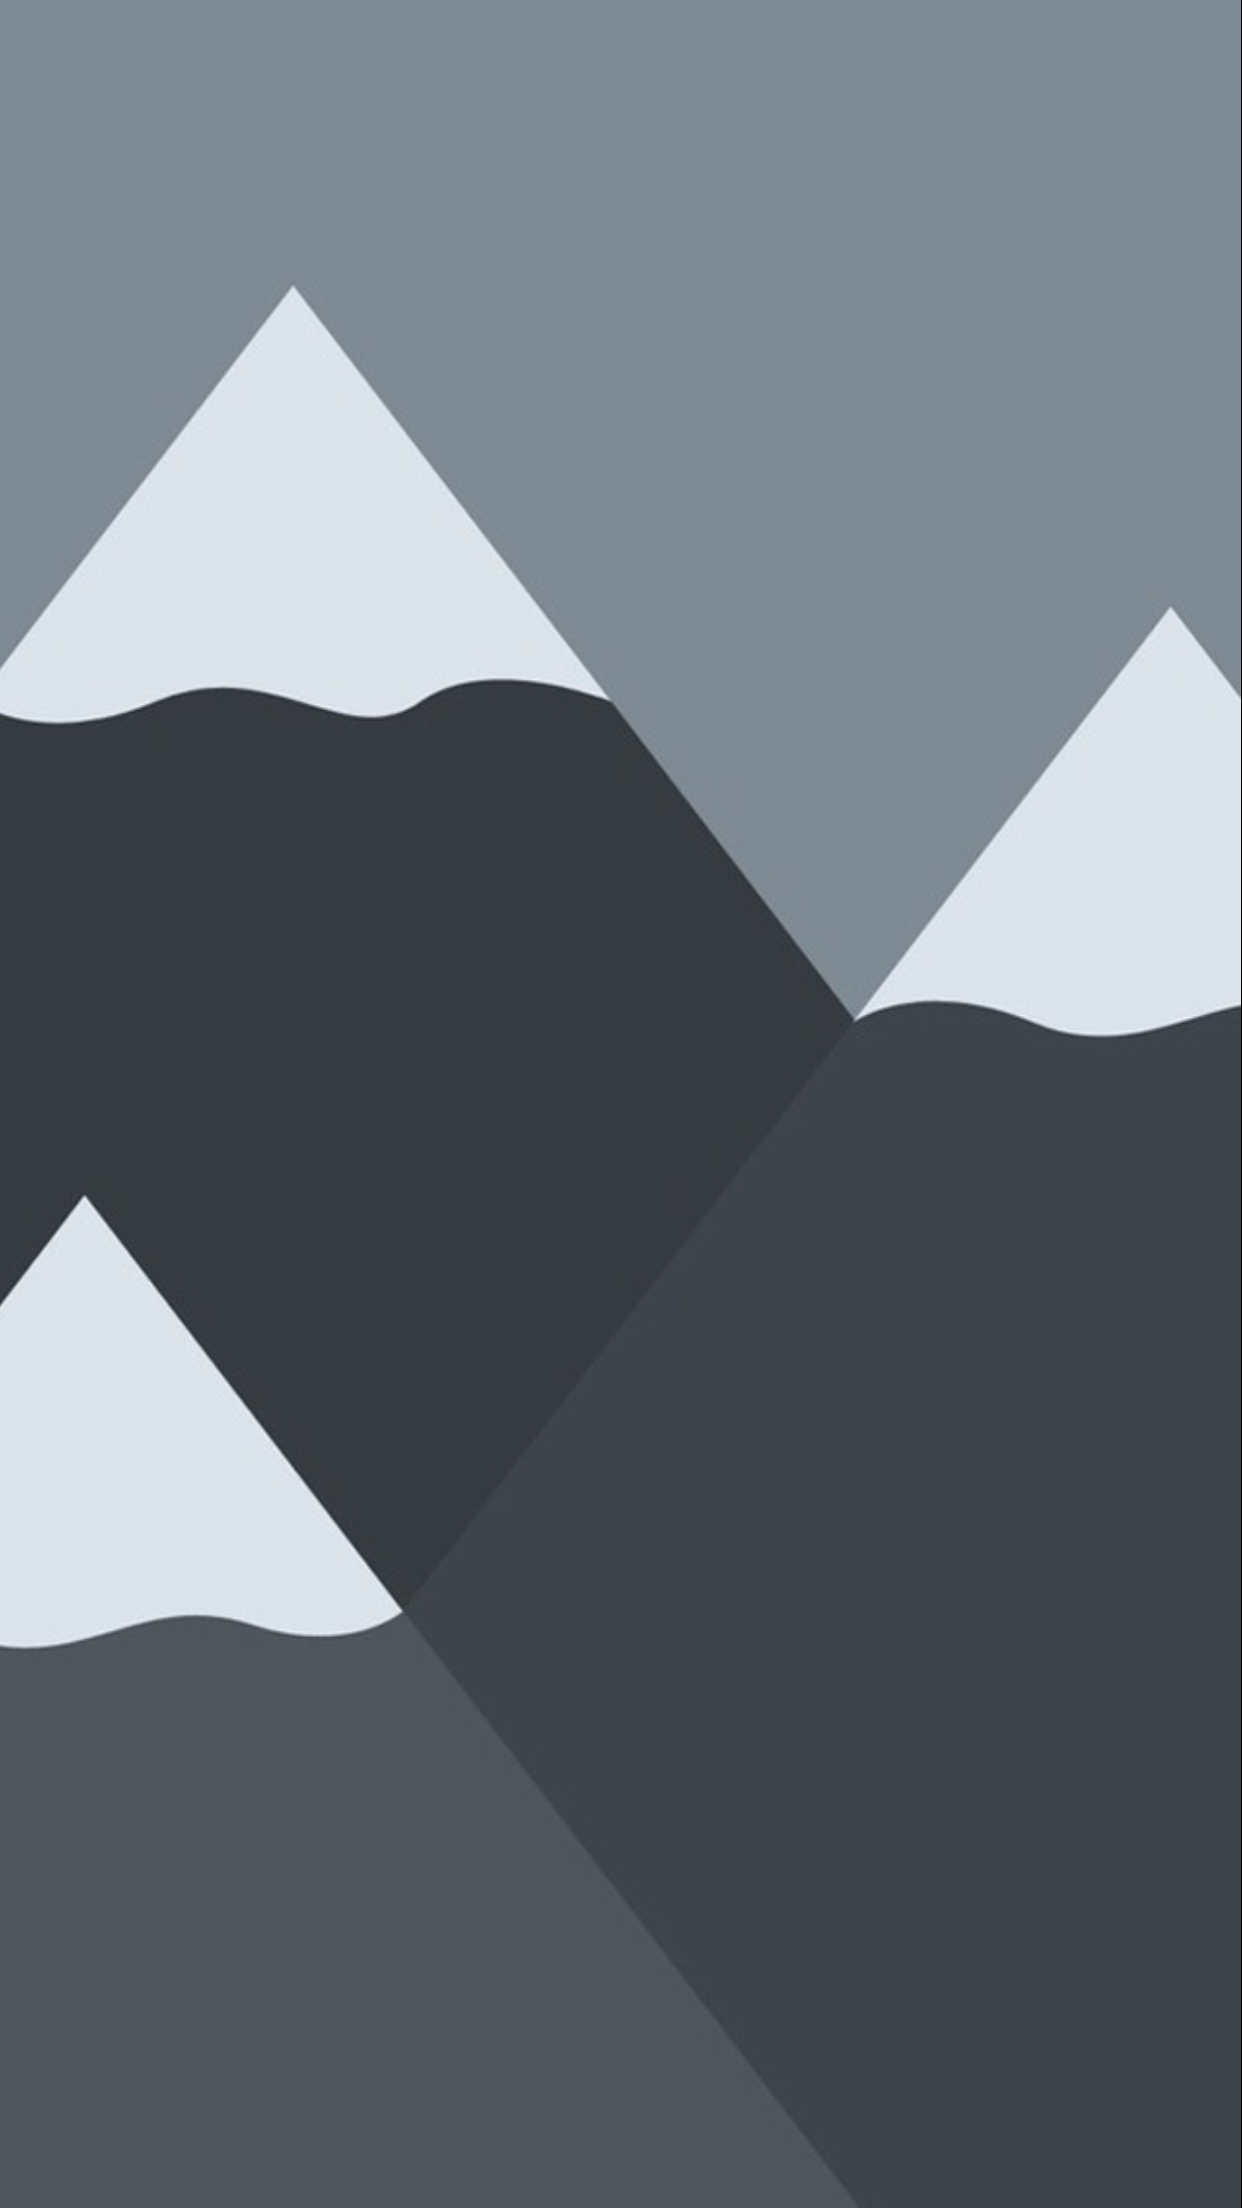 iphone minimalist wallpaper mountains minimalist wallpaper for iphone x 8 7 6 5522